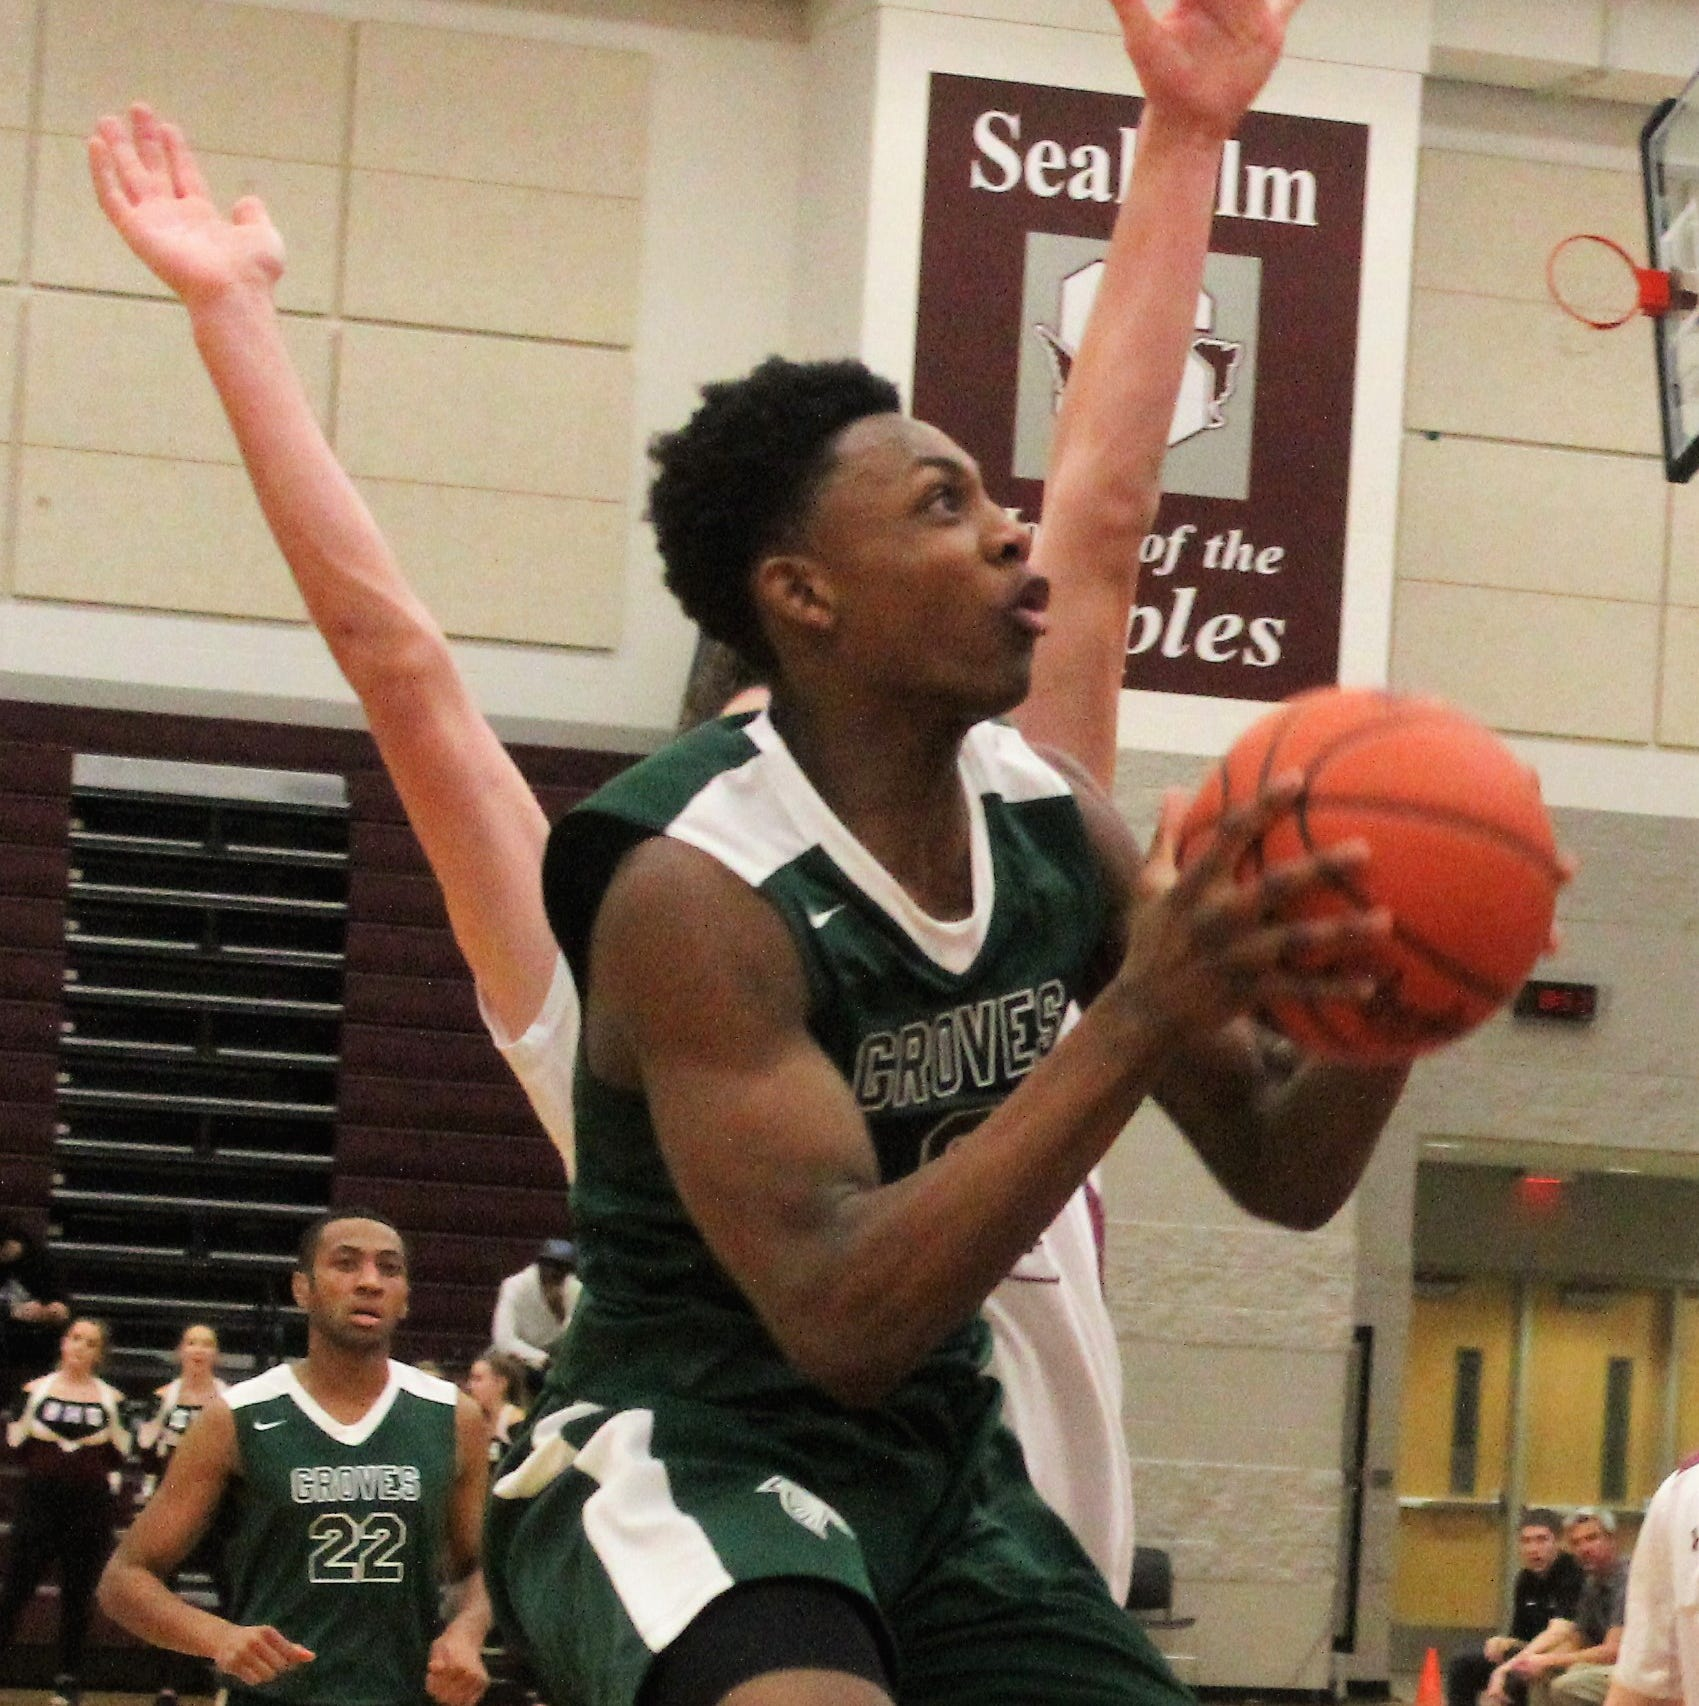 Groves takes over in fourth quarter to corral district rival Seaholm